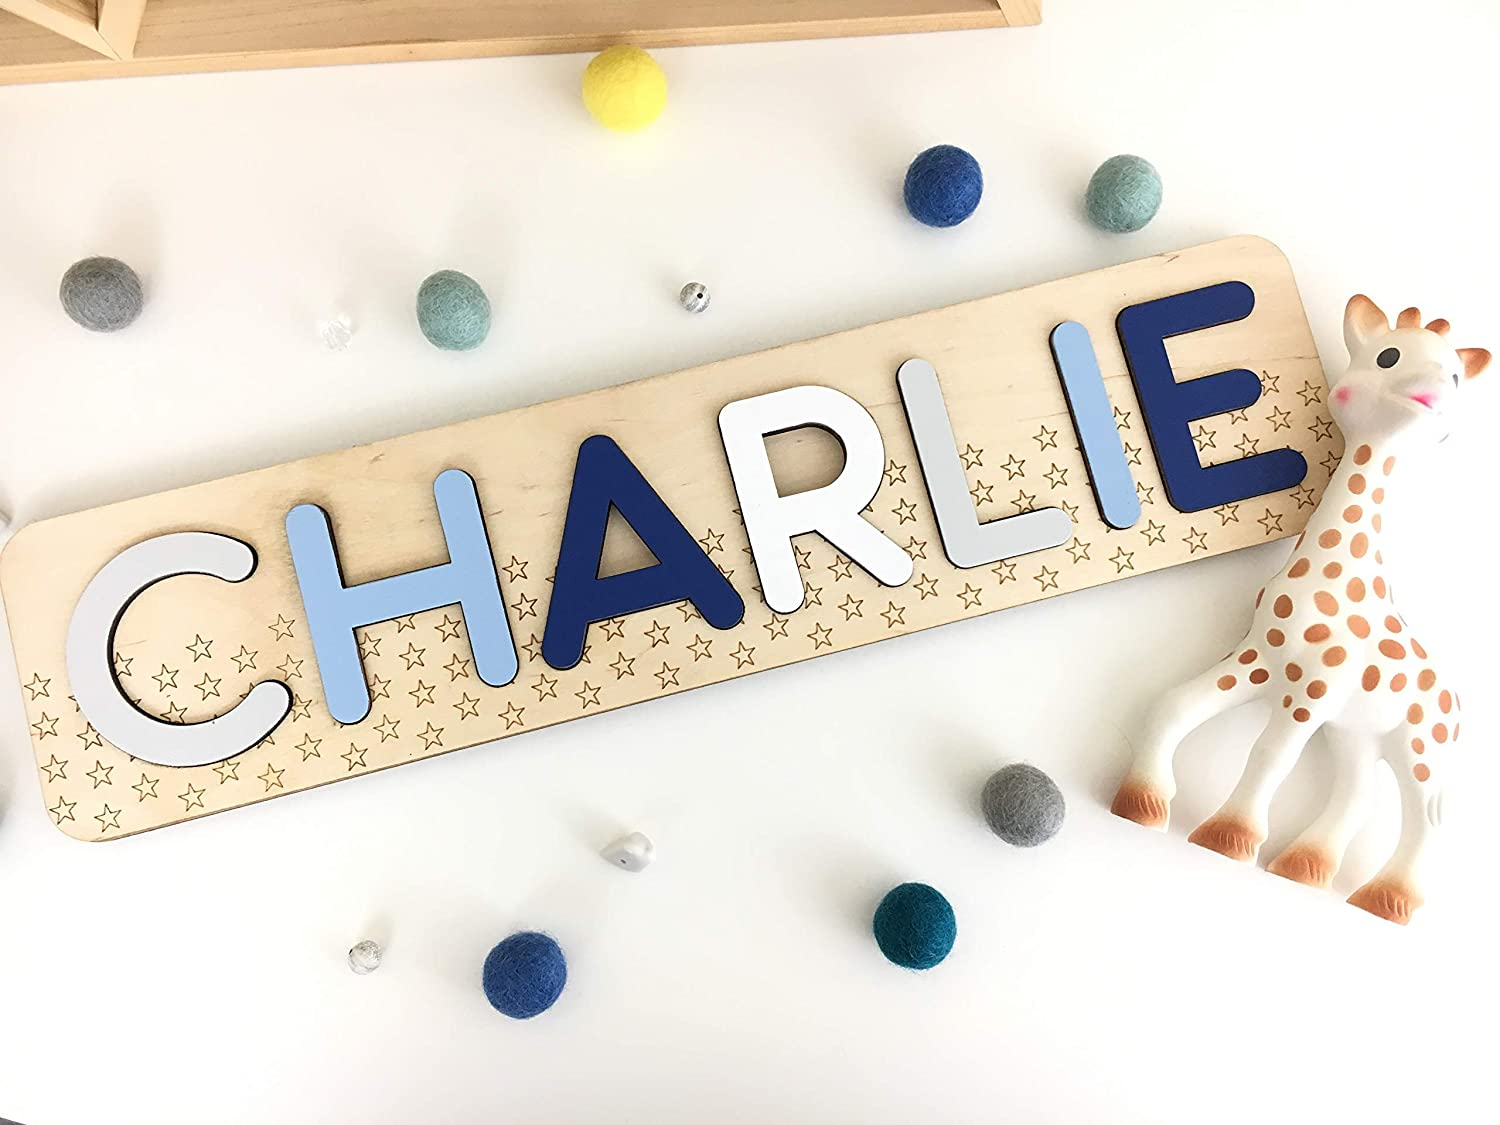 Wooden toddler puzzle with pattern Personalized baby name puzzle for boy girl Lines   Stars Handmade in California by WoodliyToys Dots Learning toys 1 year old